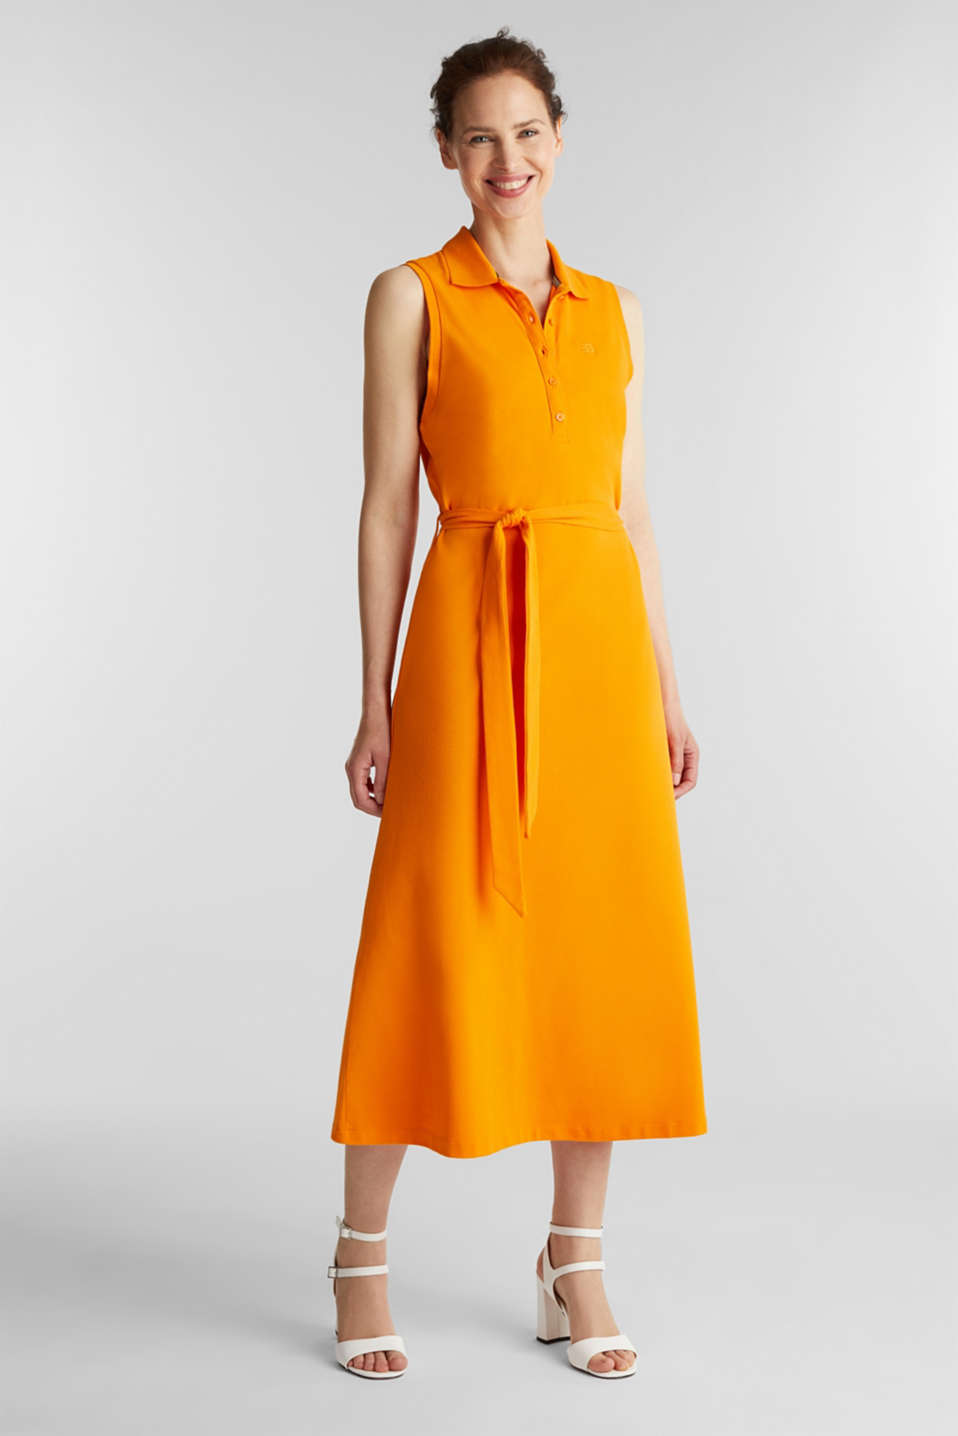 Esprit - Long dress in the style of a polo shirt with belt